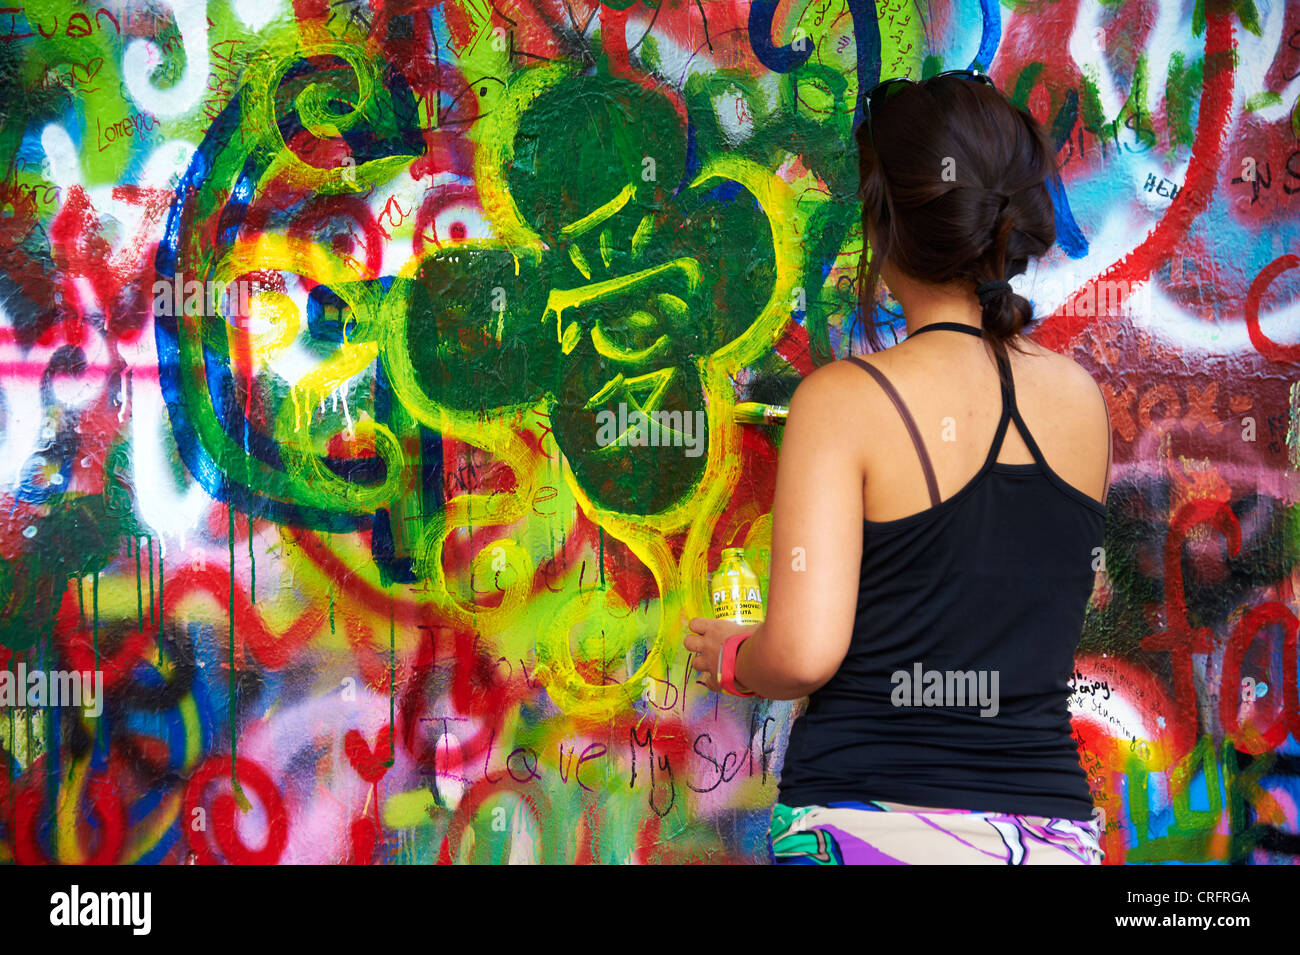 The John Lennon graffiti Wall in Prague, Czech Republic, tourist woman painting and writing testament - Stock Image